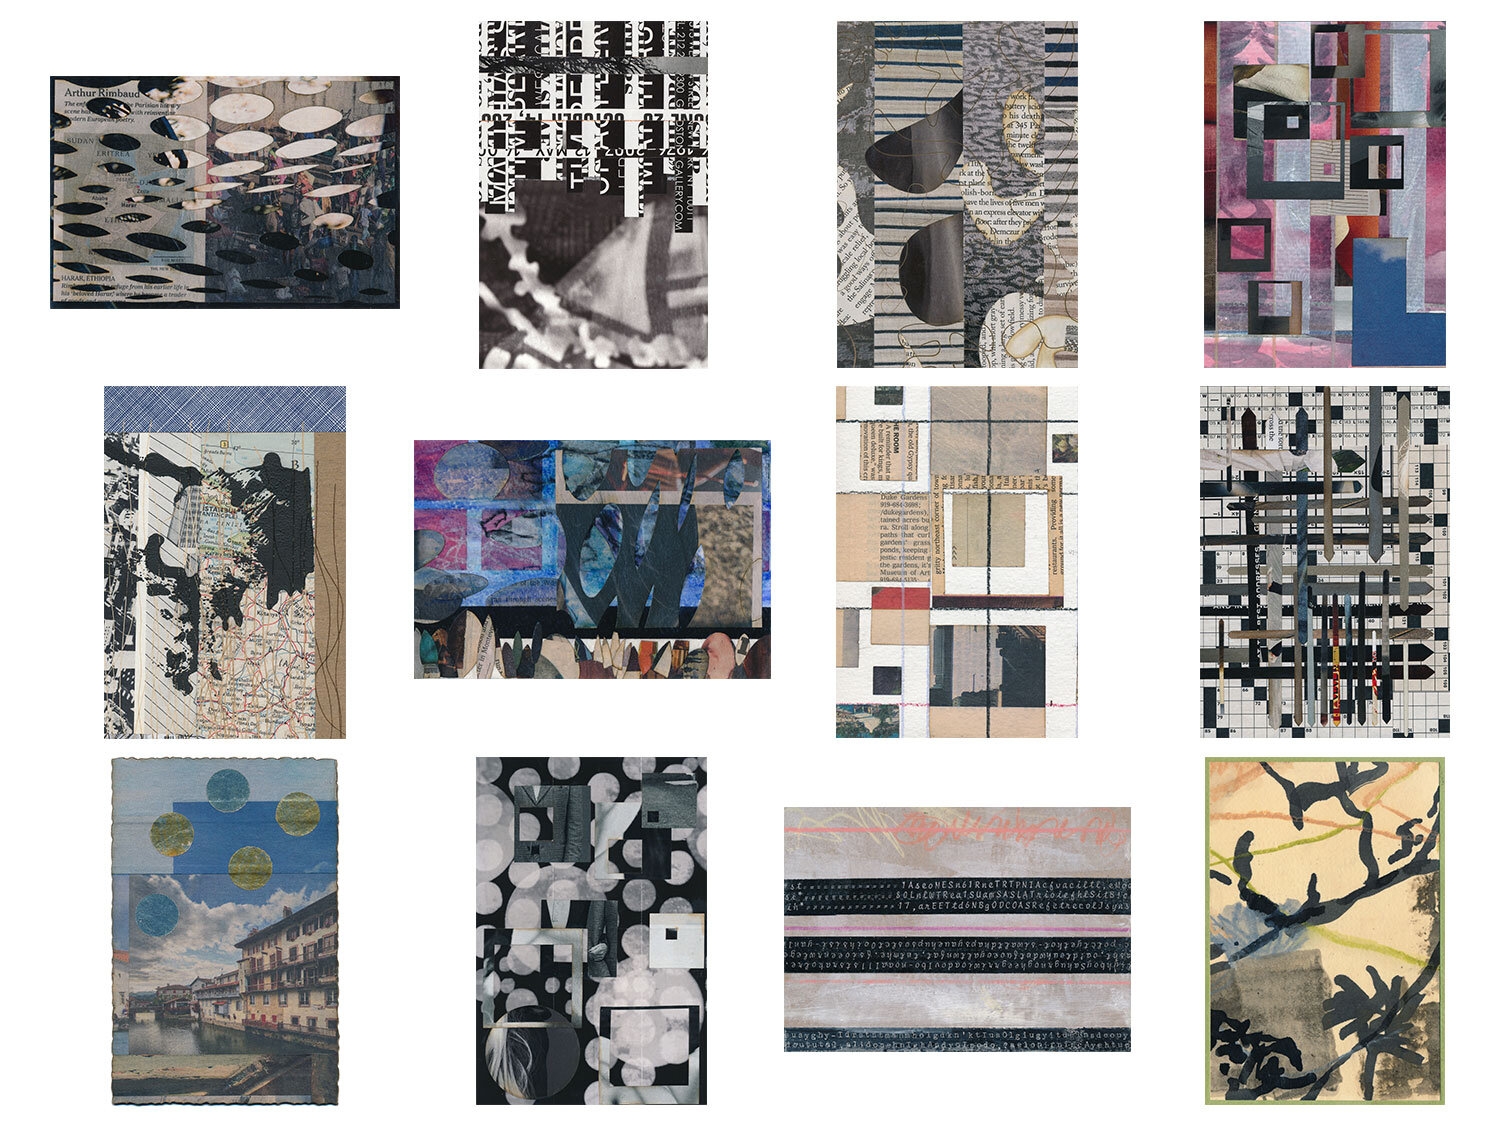 A completed mail art subscription, snail mailed small works of collage in postcard form to longtime subscribers Fins-Markowitz, January - December 2015.  Artisanal Postcards Numbers 1,117 • 1,033 • 1,075 • 1,098 • 1,105 • 1,166 • 1,134 • 1,145 • 1,196 • 1,180 • 1,151 • 1,168